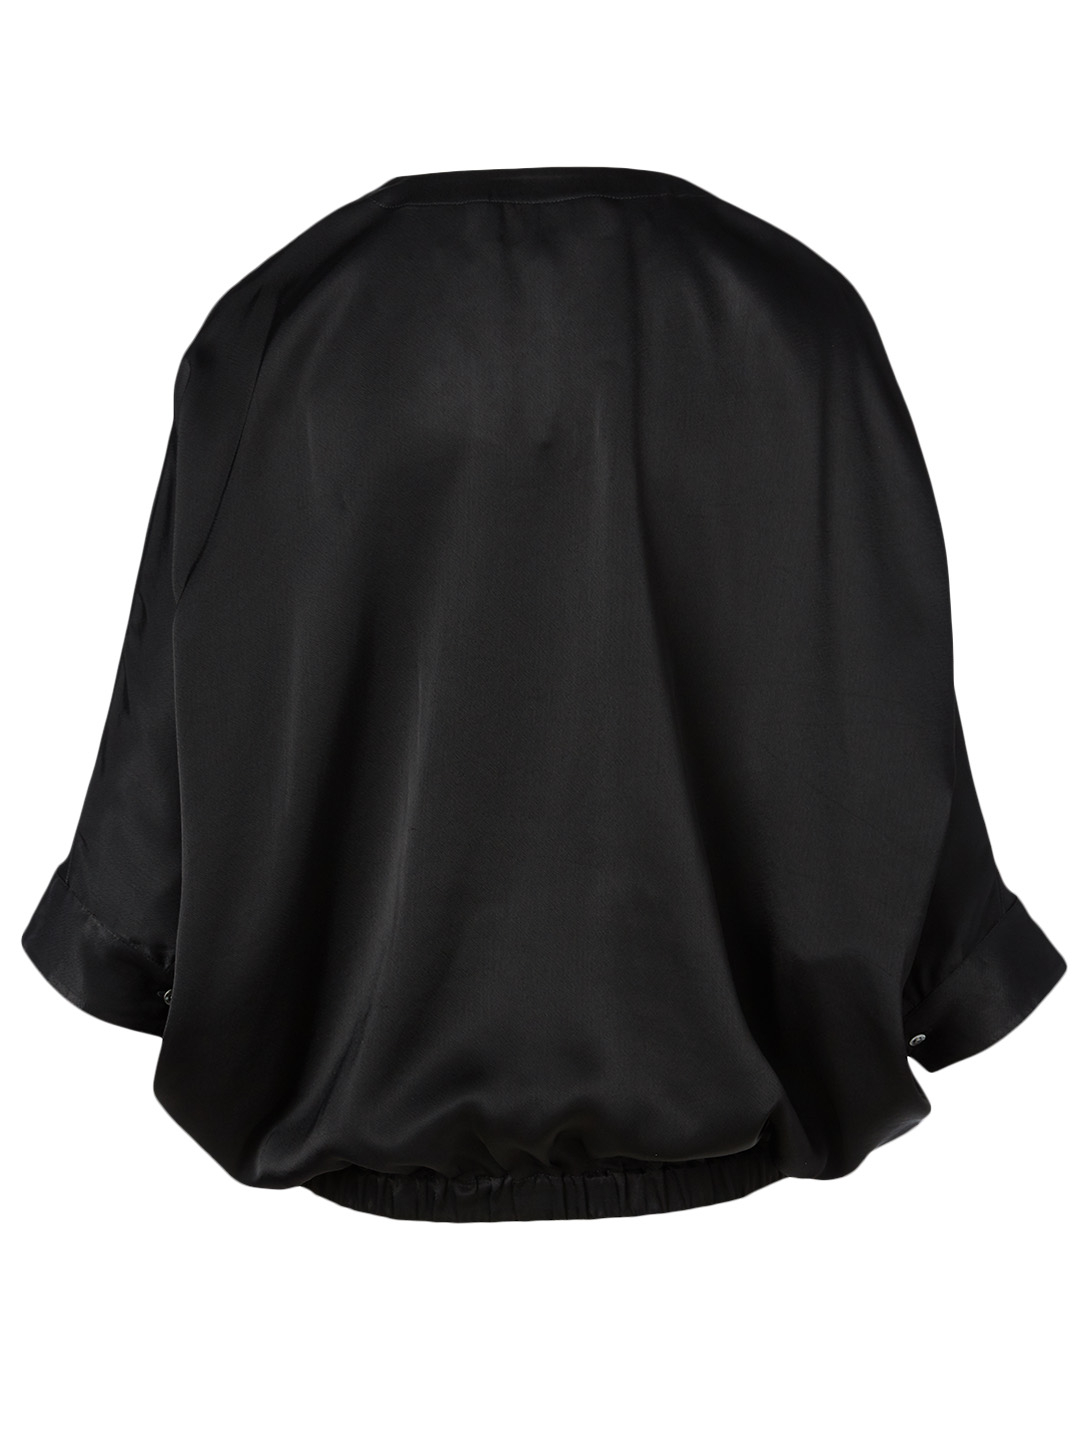 3.1 PHILLIP LIM Satin Dolman-Sleeve Blouse Women's Black